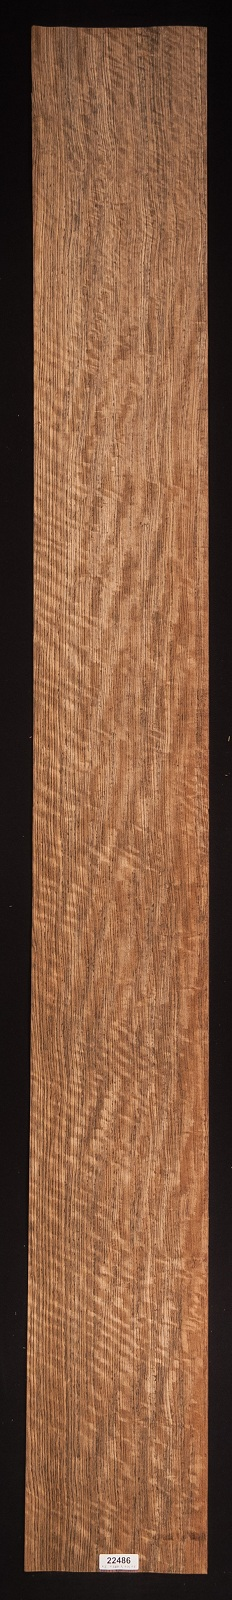 AAA Figured Mozambique Veneer Sheet